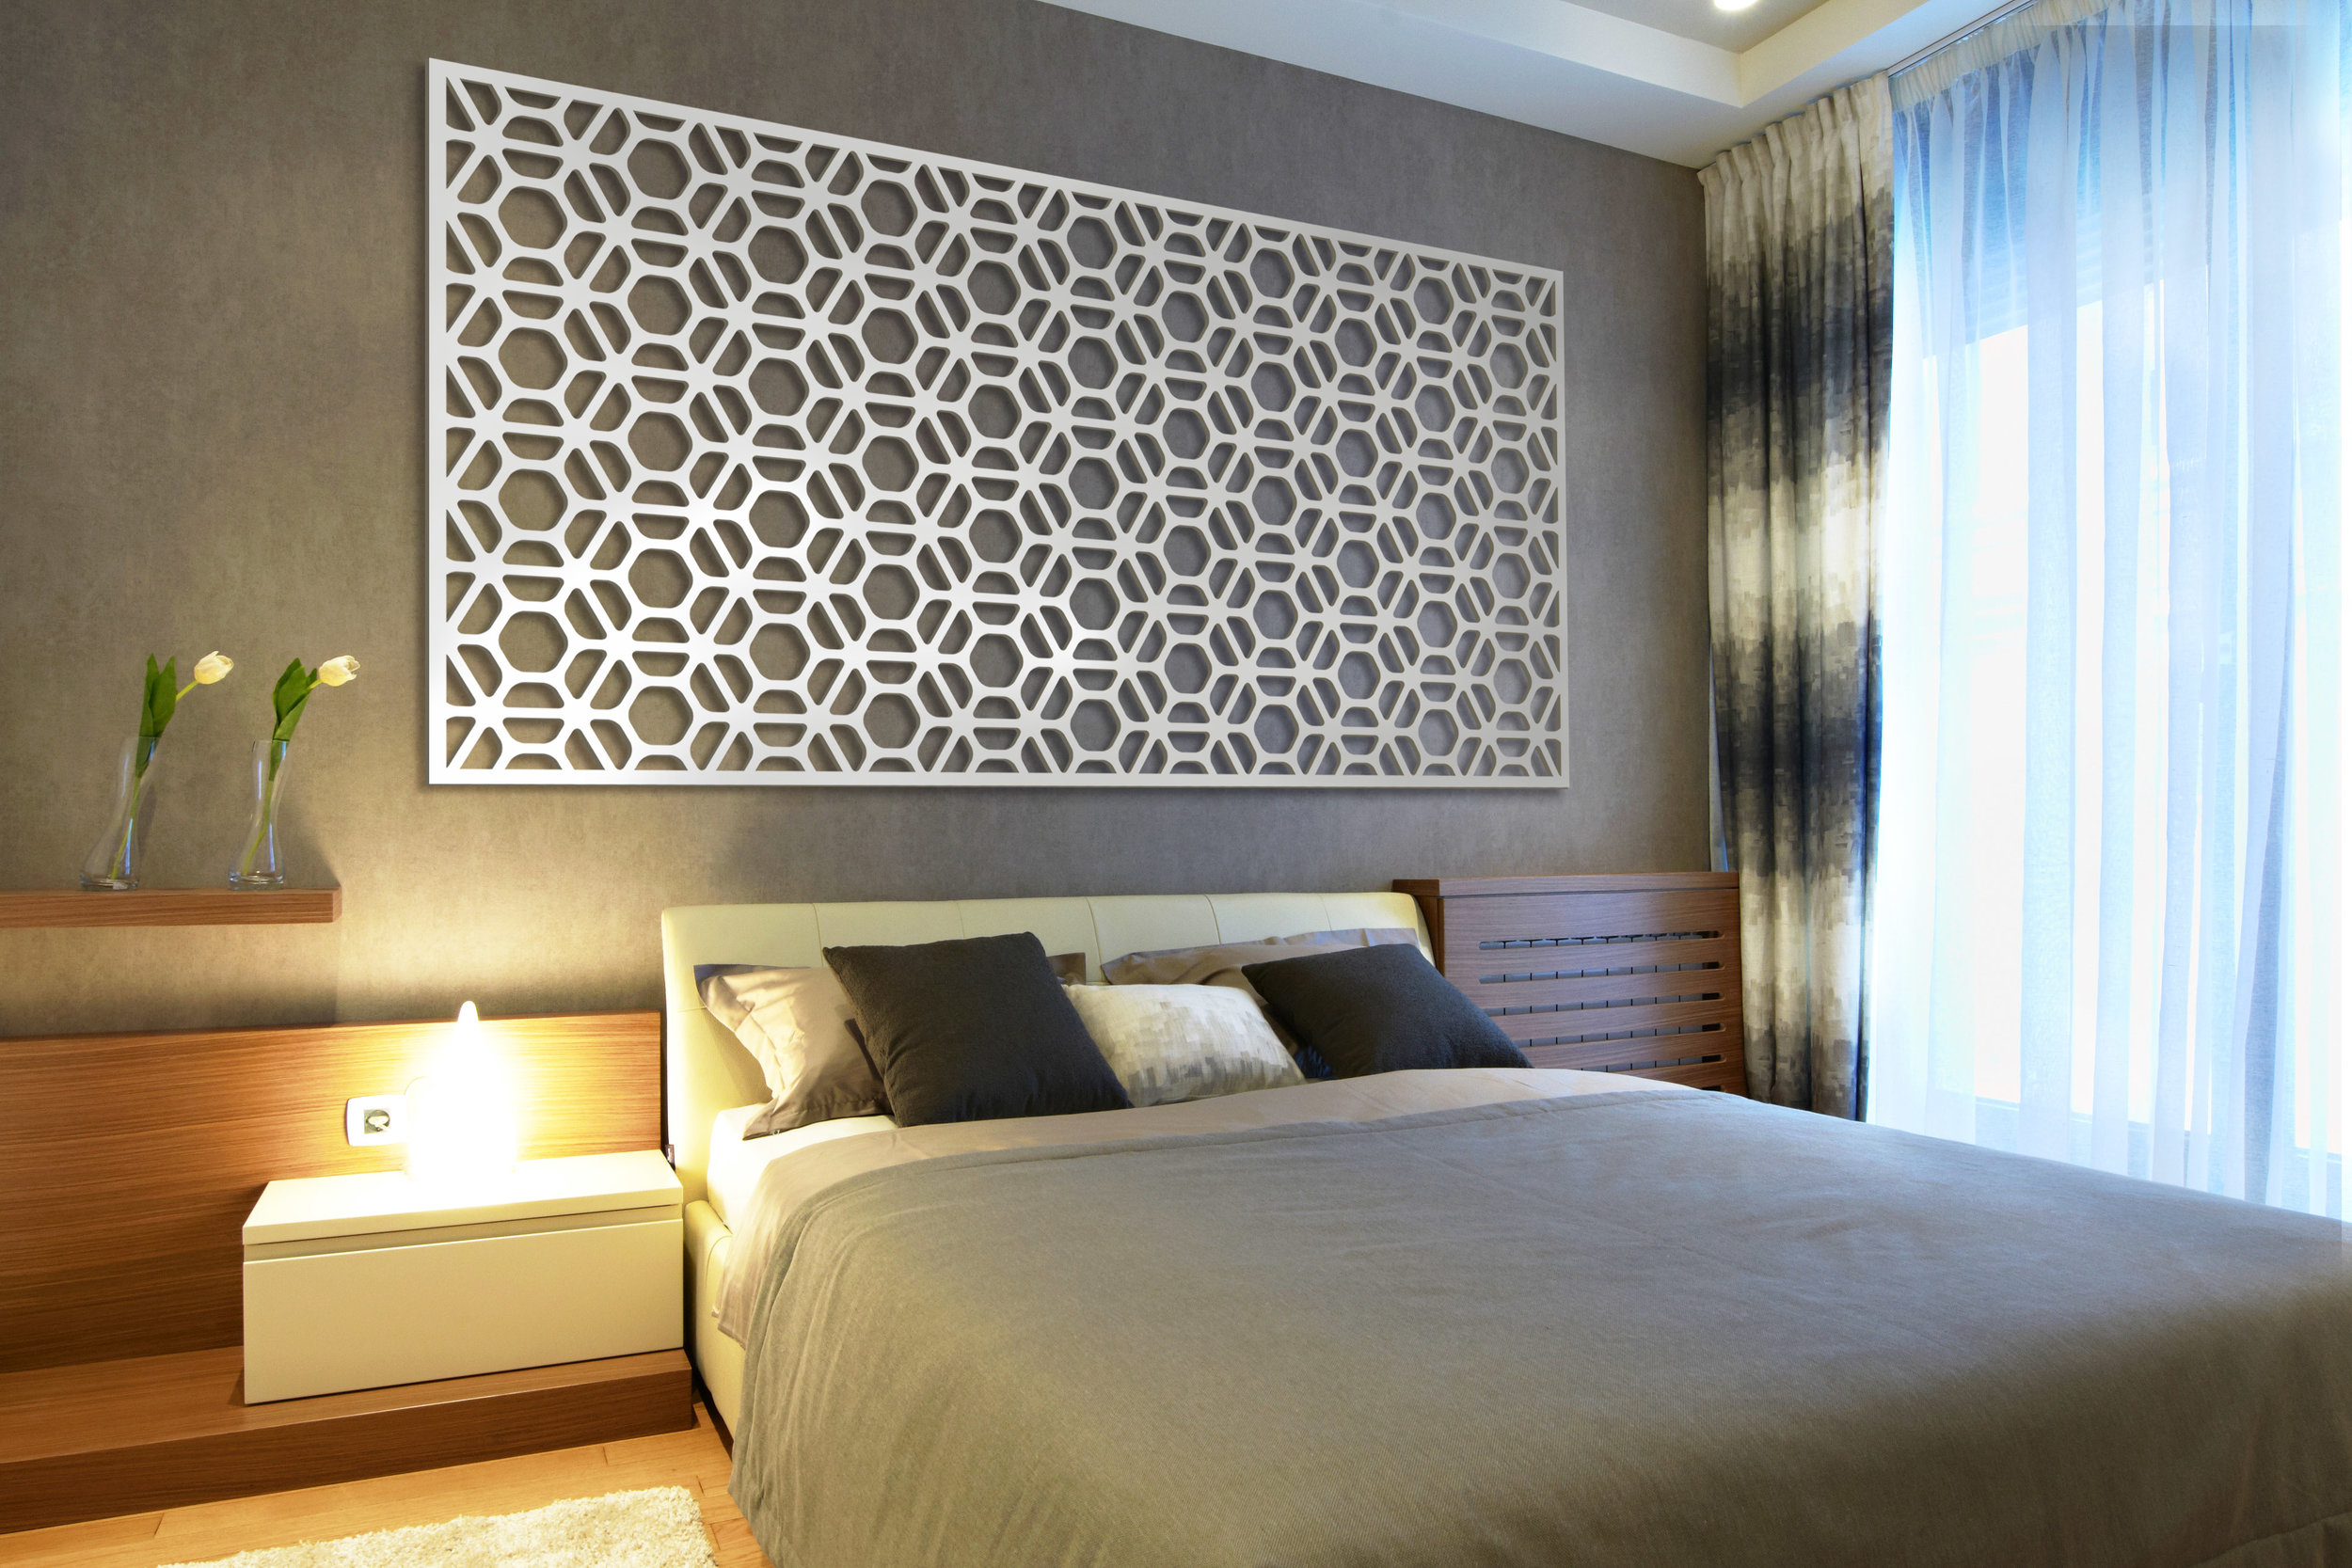 Installation Rendering C   Taiwan decorative hotel wall panel - painted